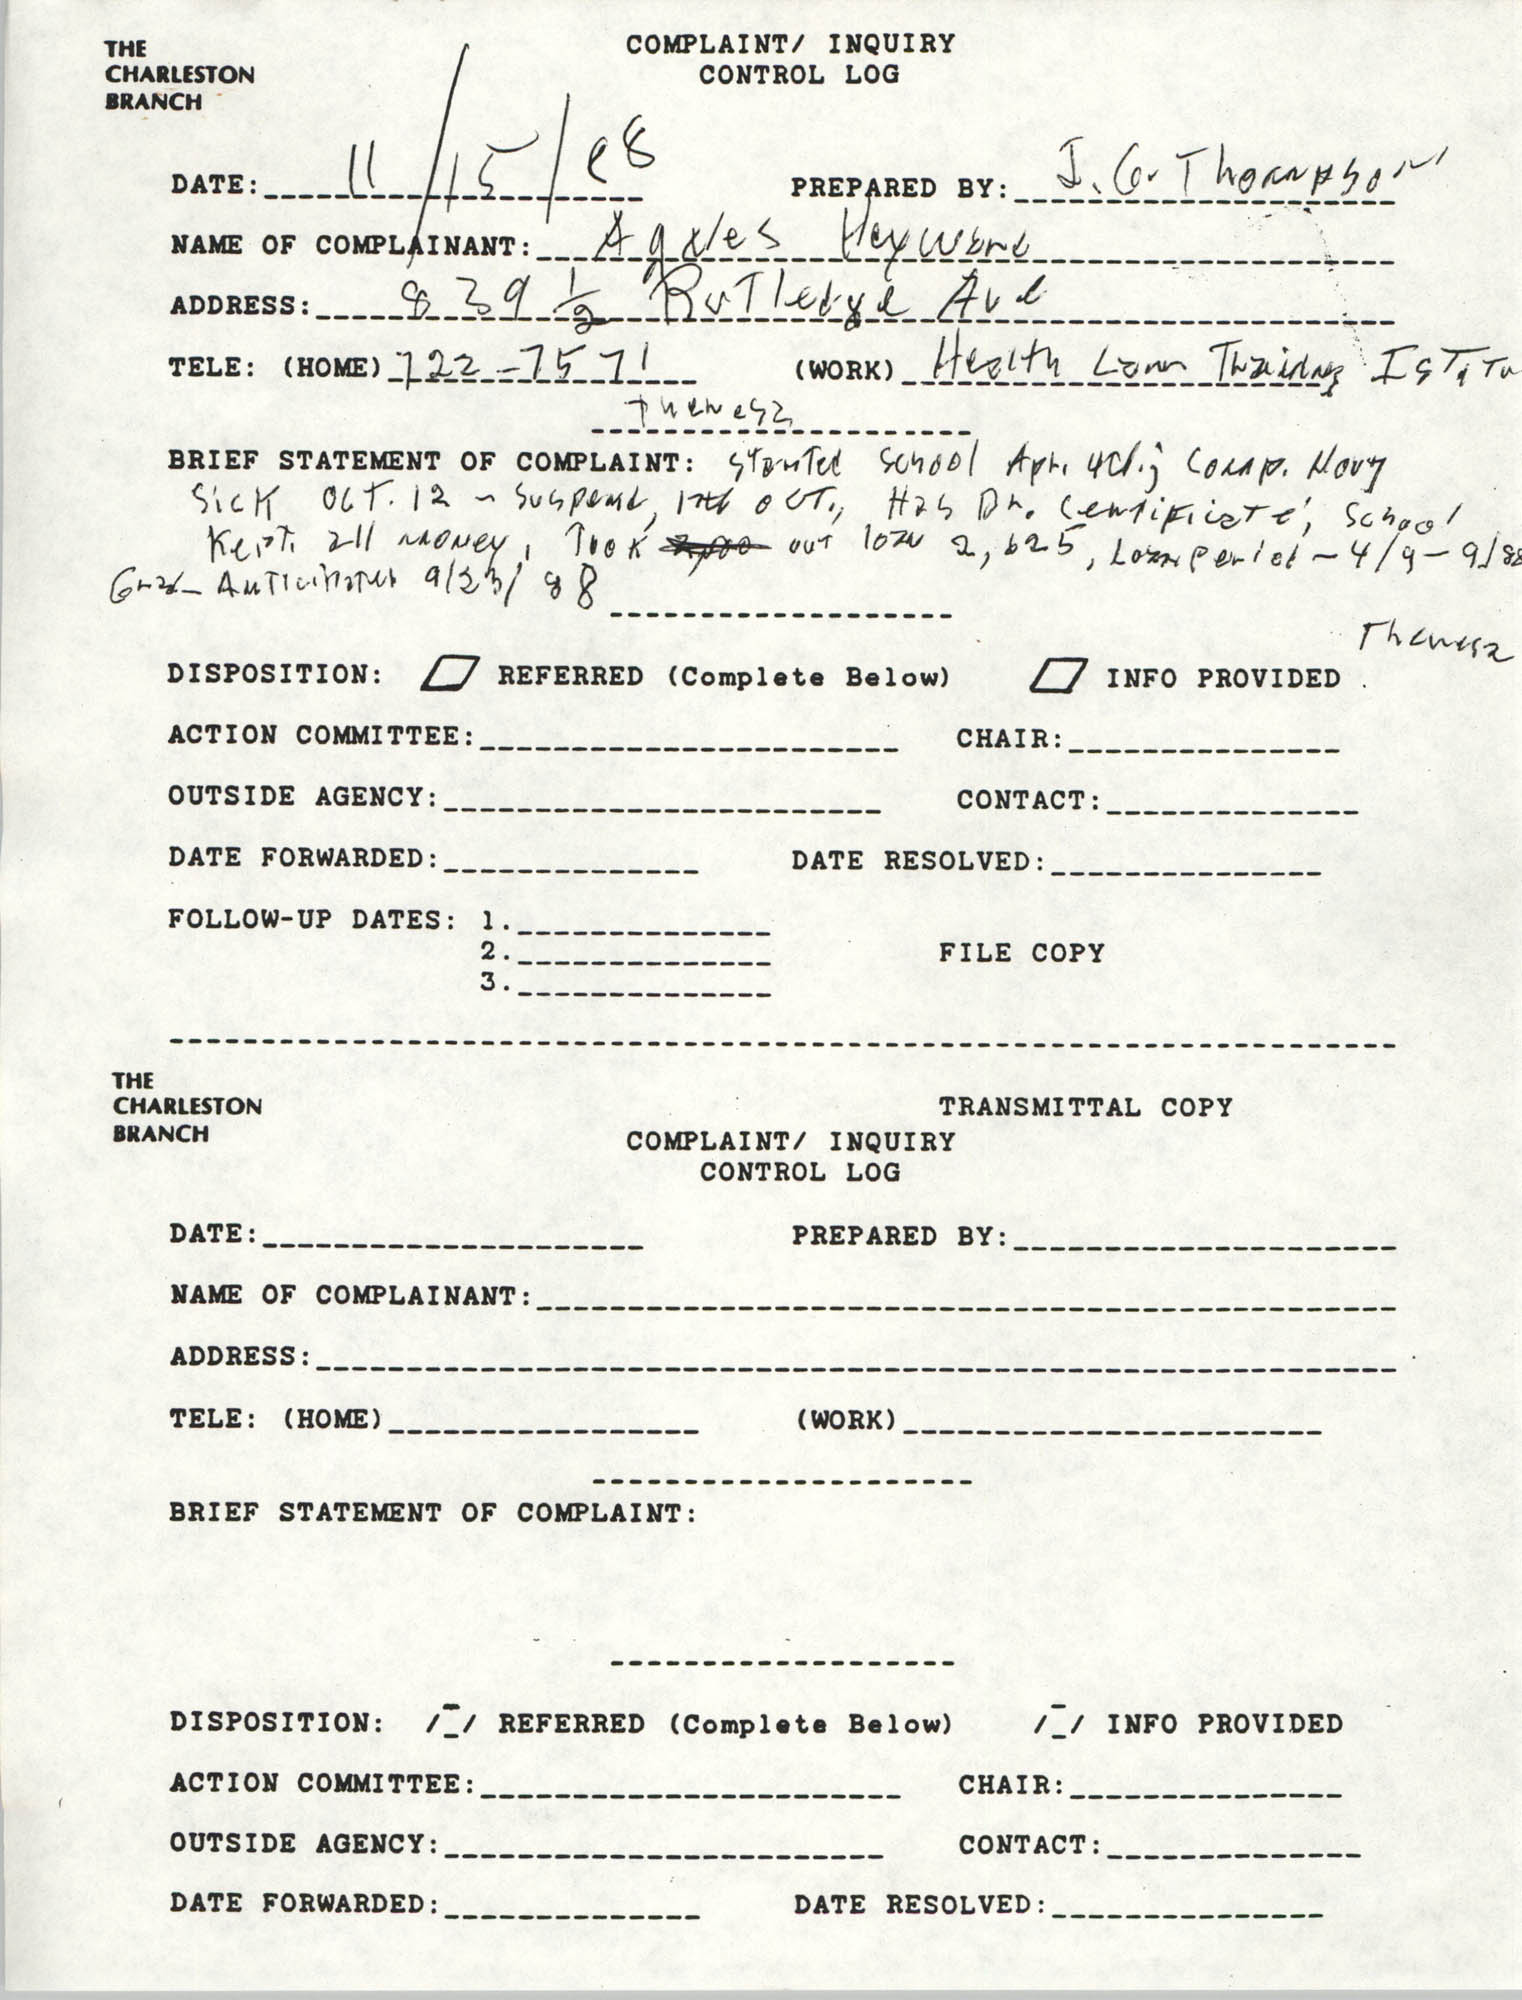 Complaint Form, Charleston Branch of the NAACP, November 15, 1988